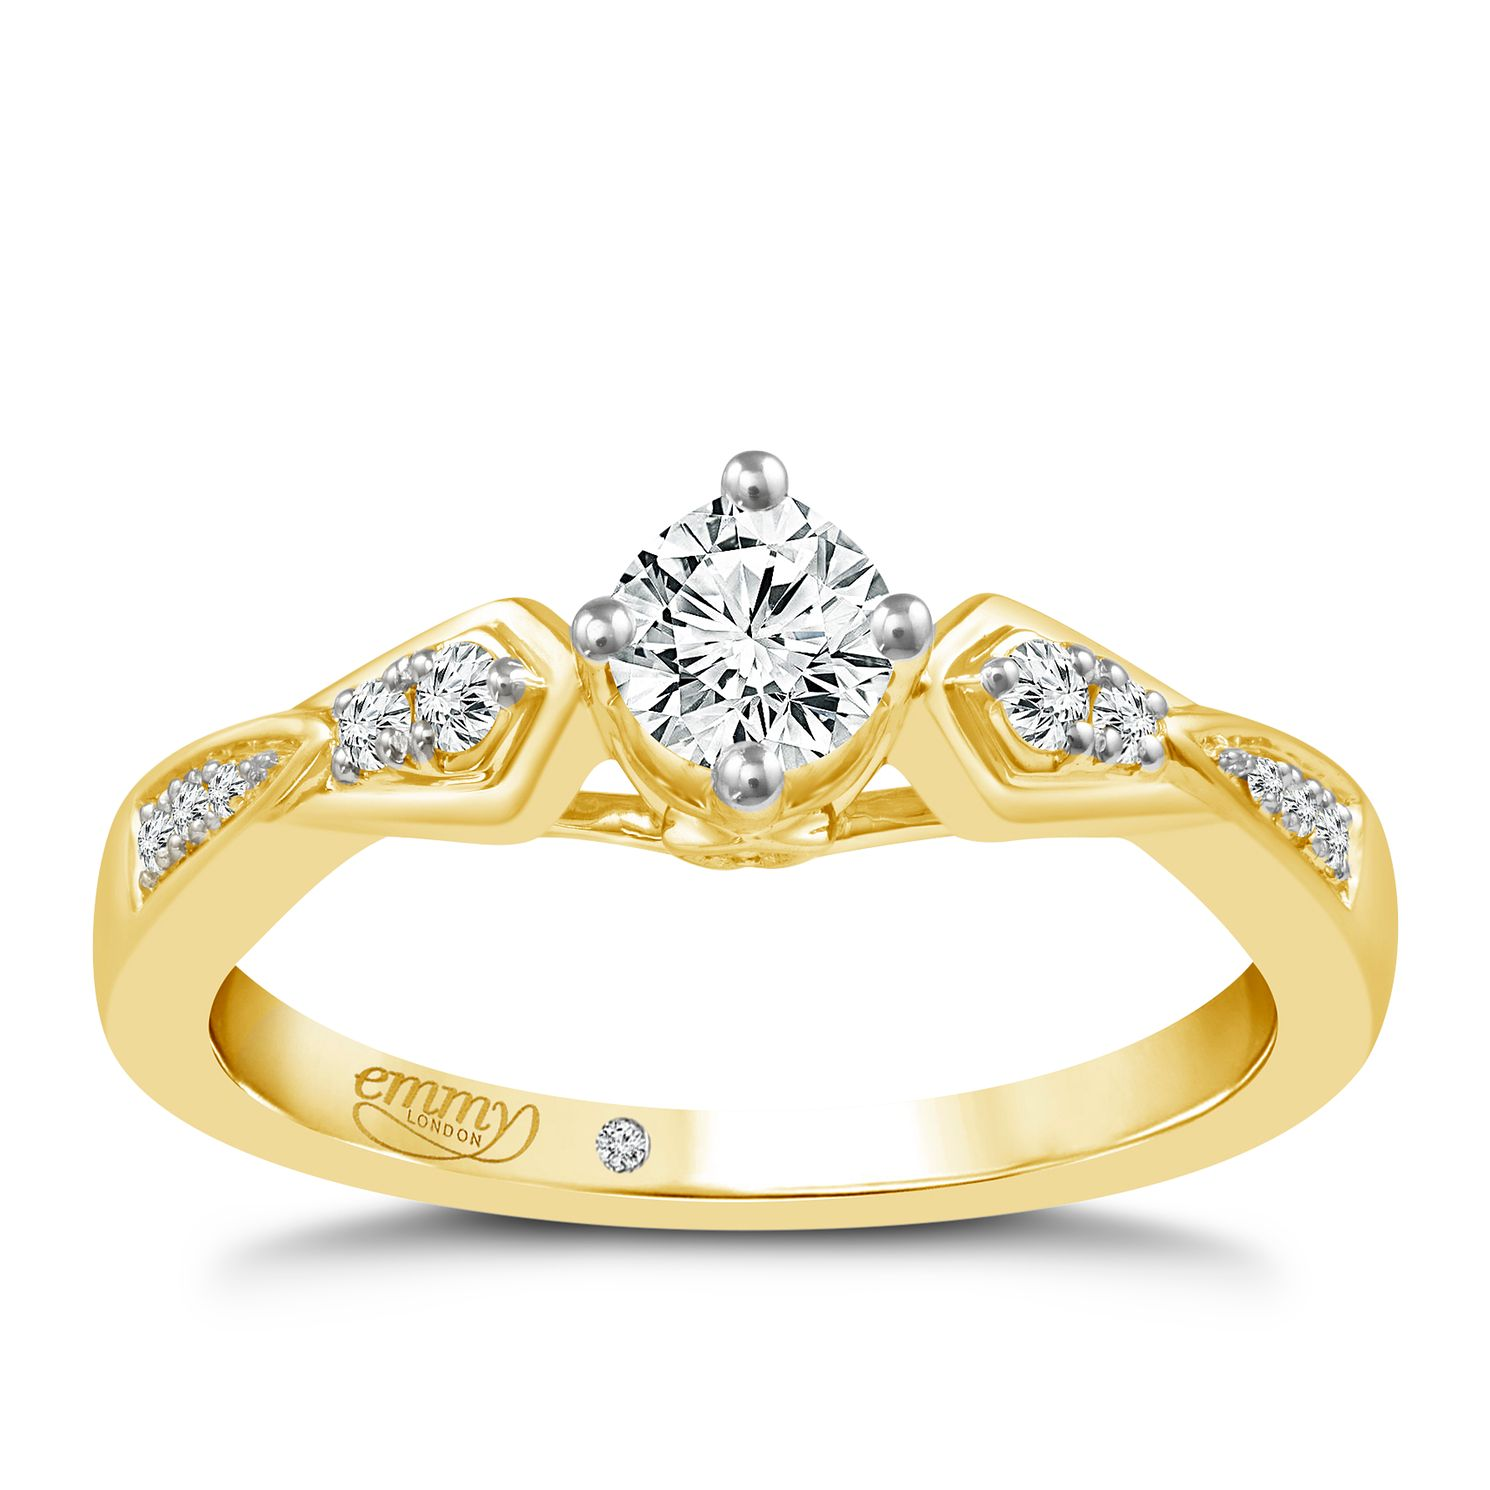 Emmy London 18ct Yellow Gold 1/3ct Diamond Solitaire Ring - Product number 5286425